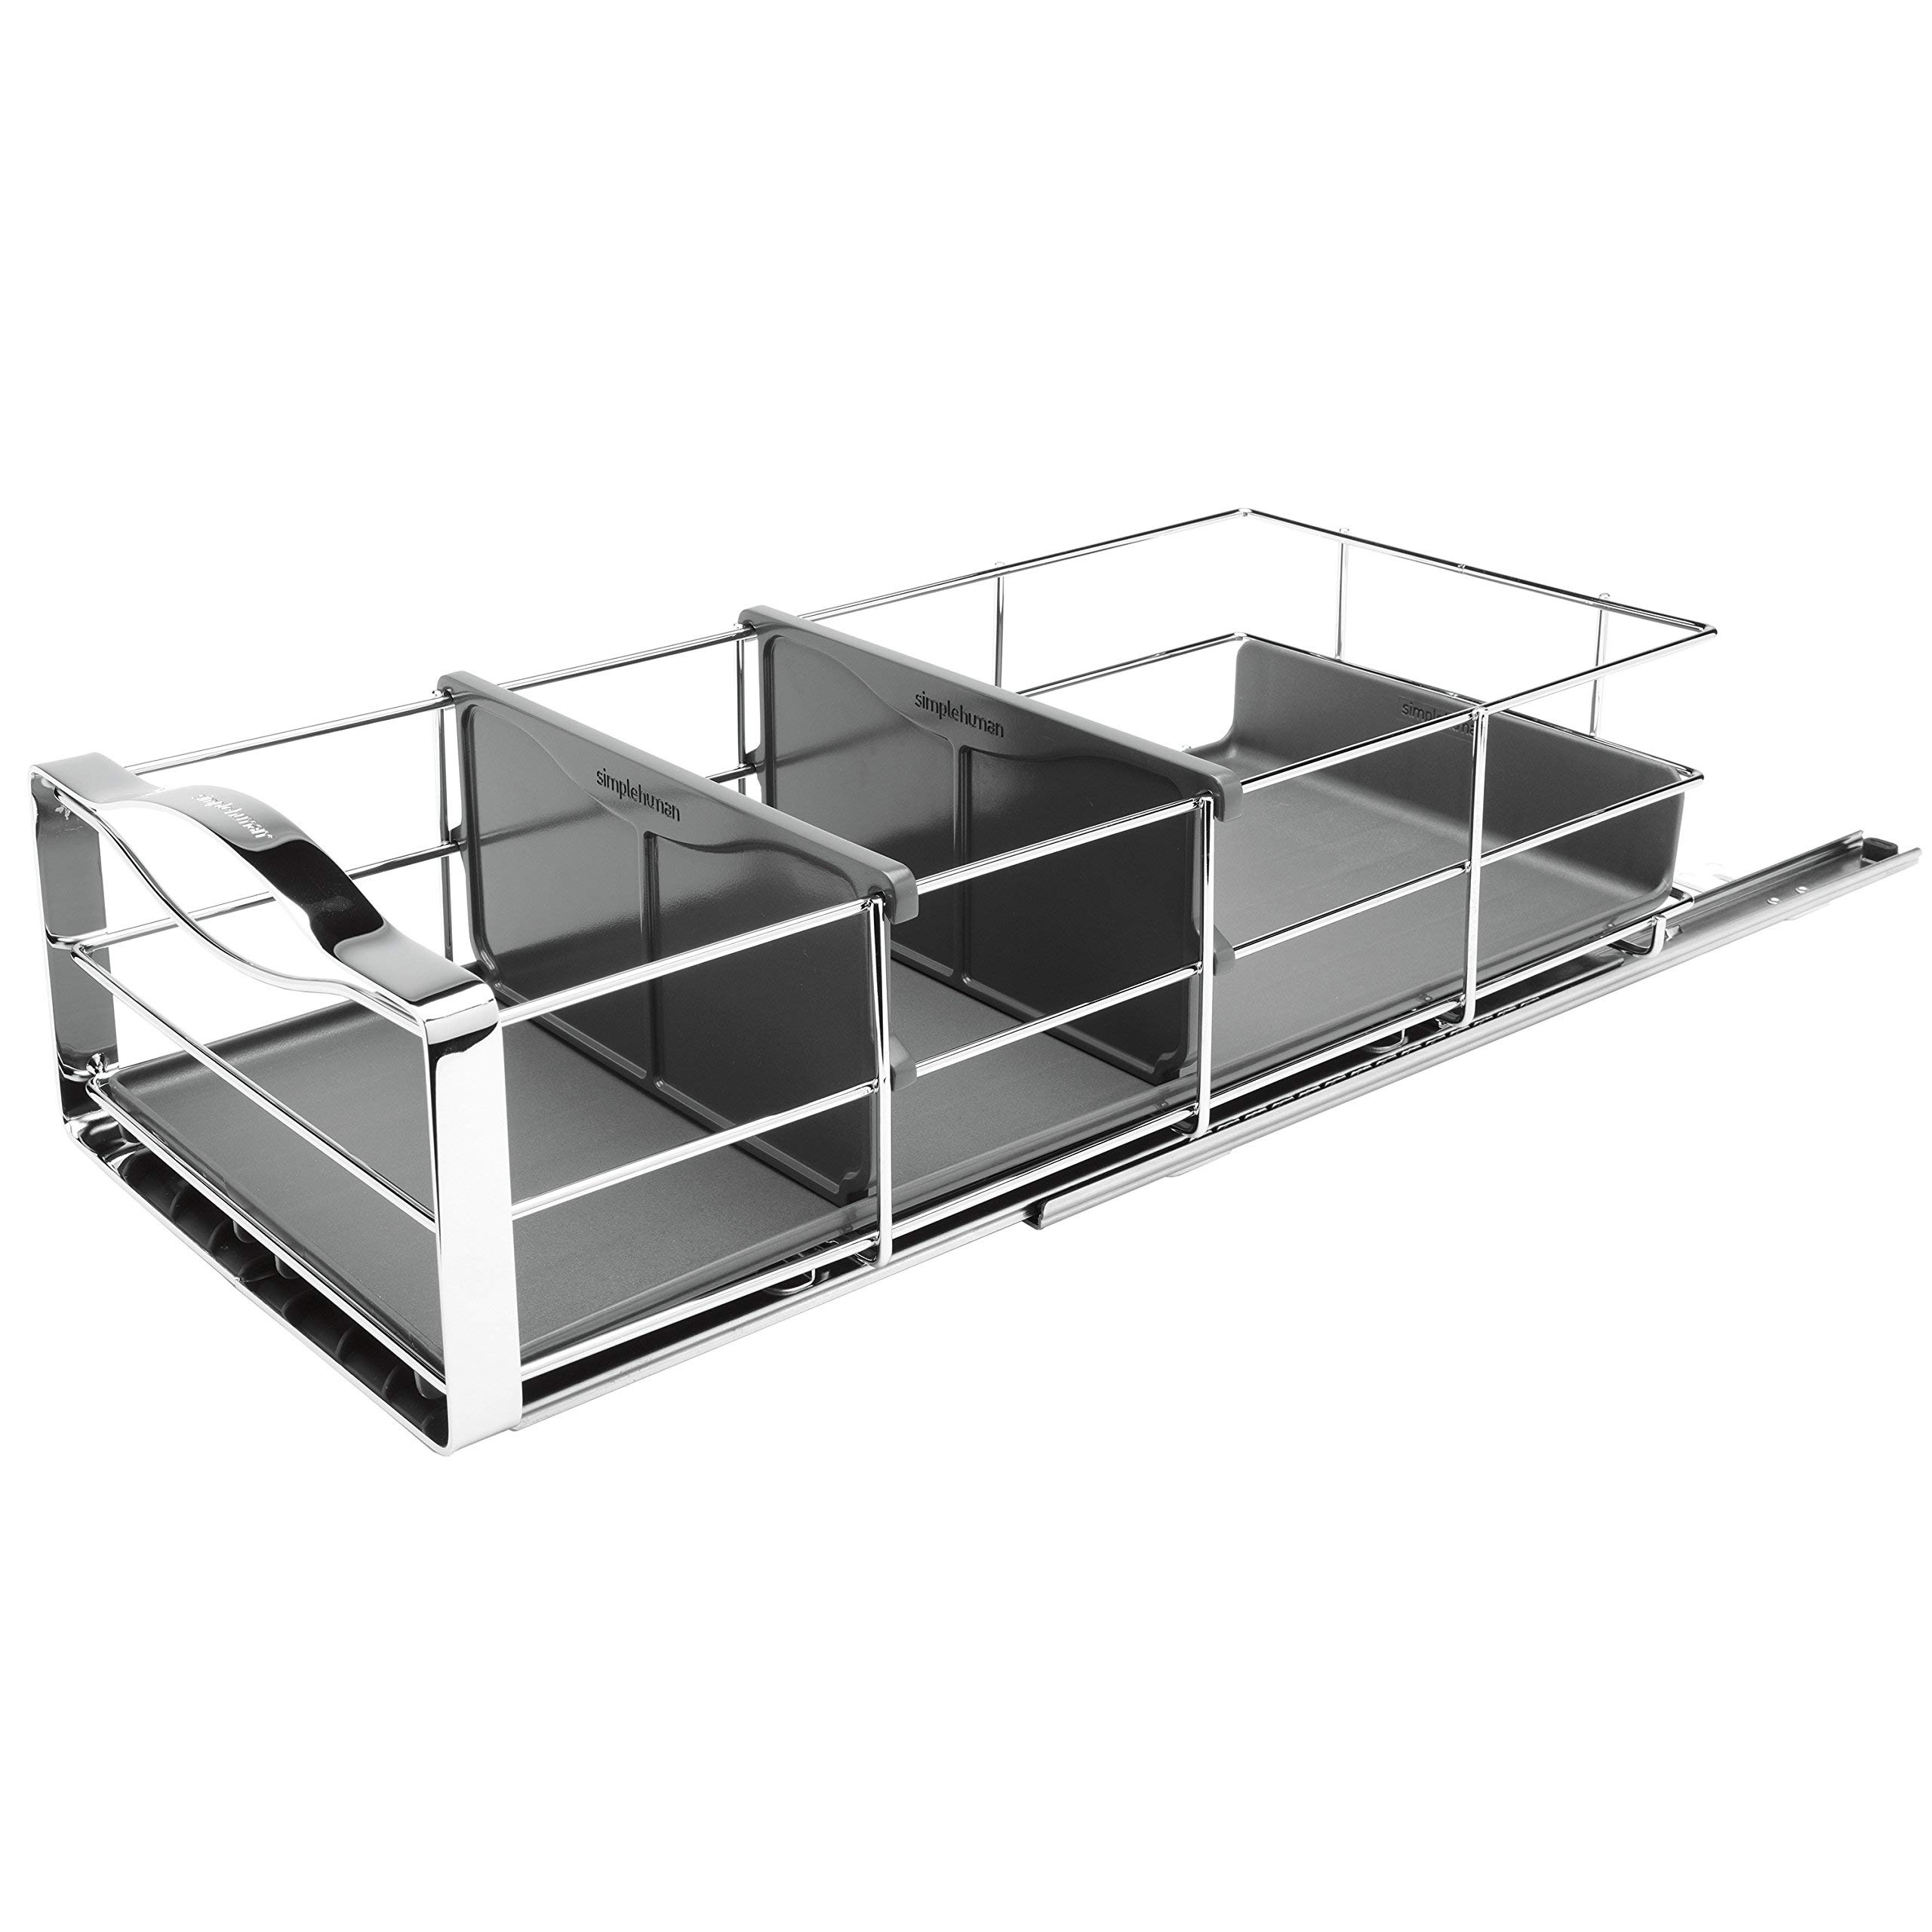 simplehuman Pull Out Cabinet Organizer 9'', Stainless Steel (Renewed)